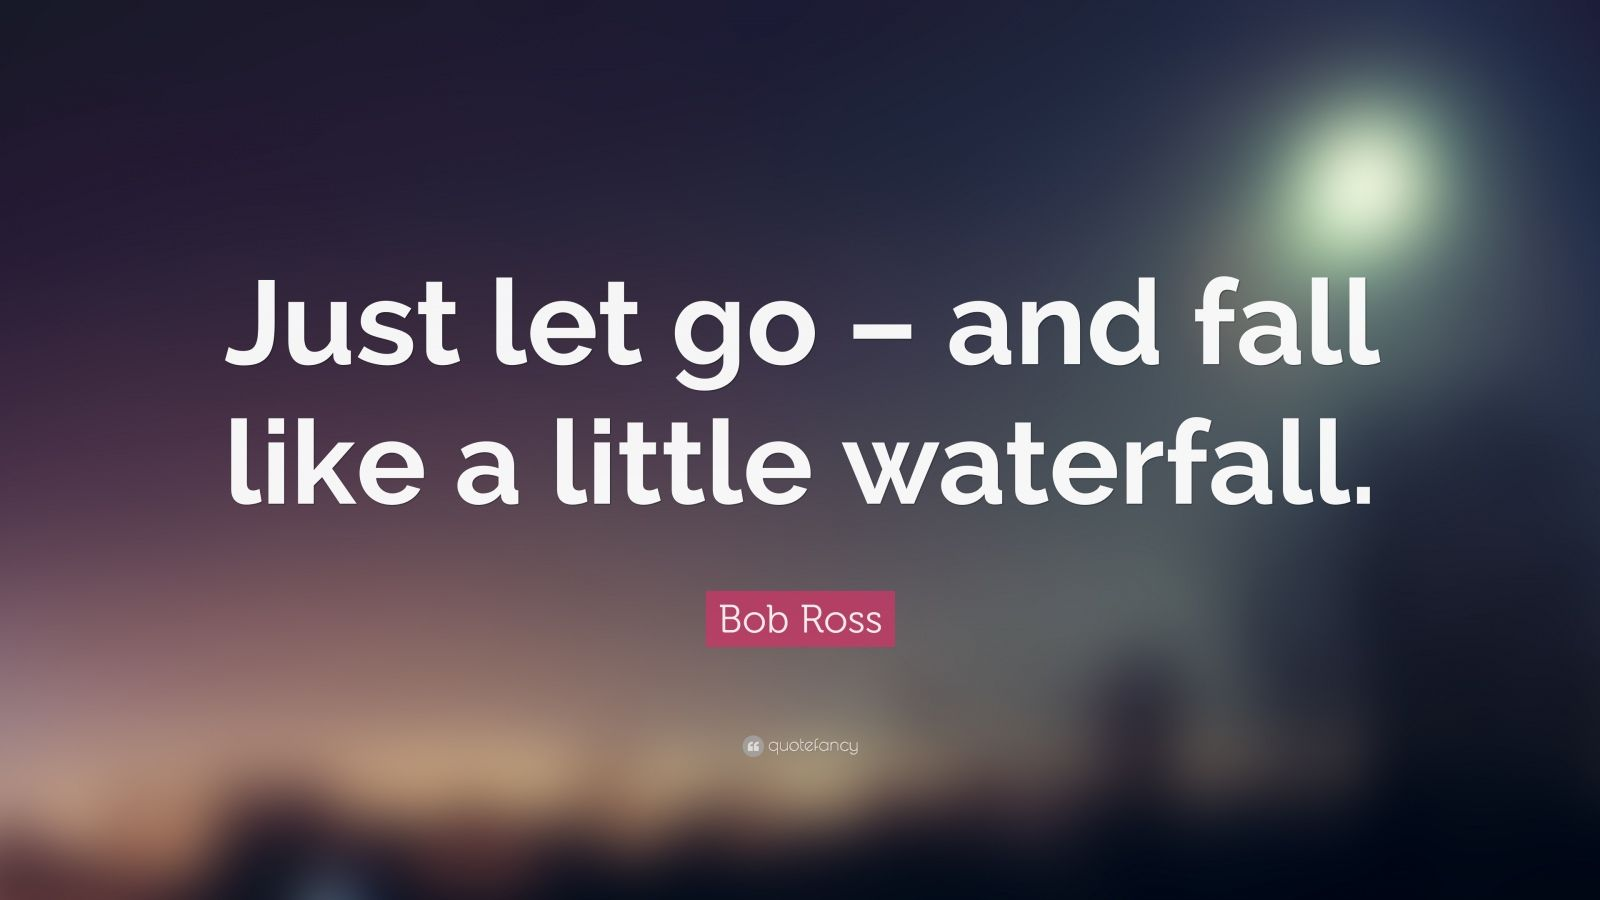 Fall Waterfall Wallpaper Bob Ross Quote Just Let Go And Fall Like A Little